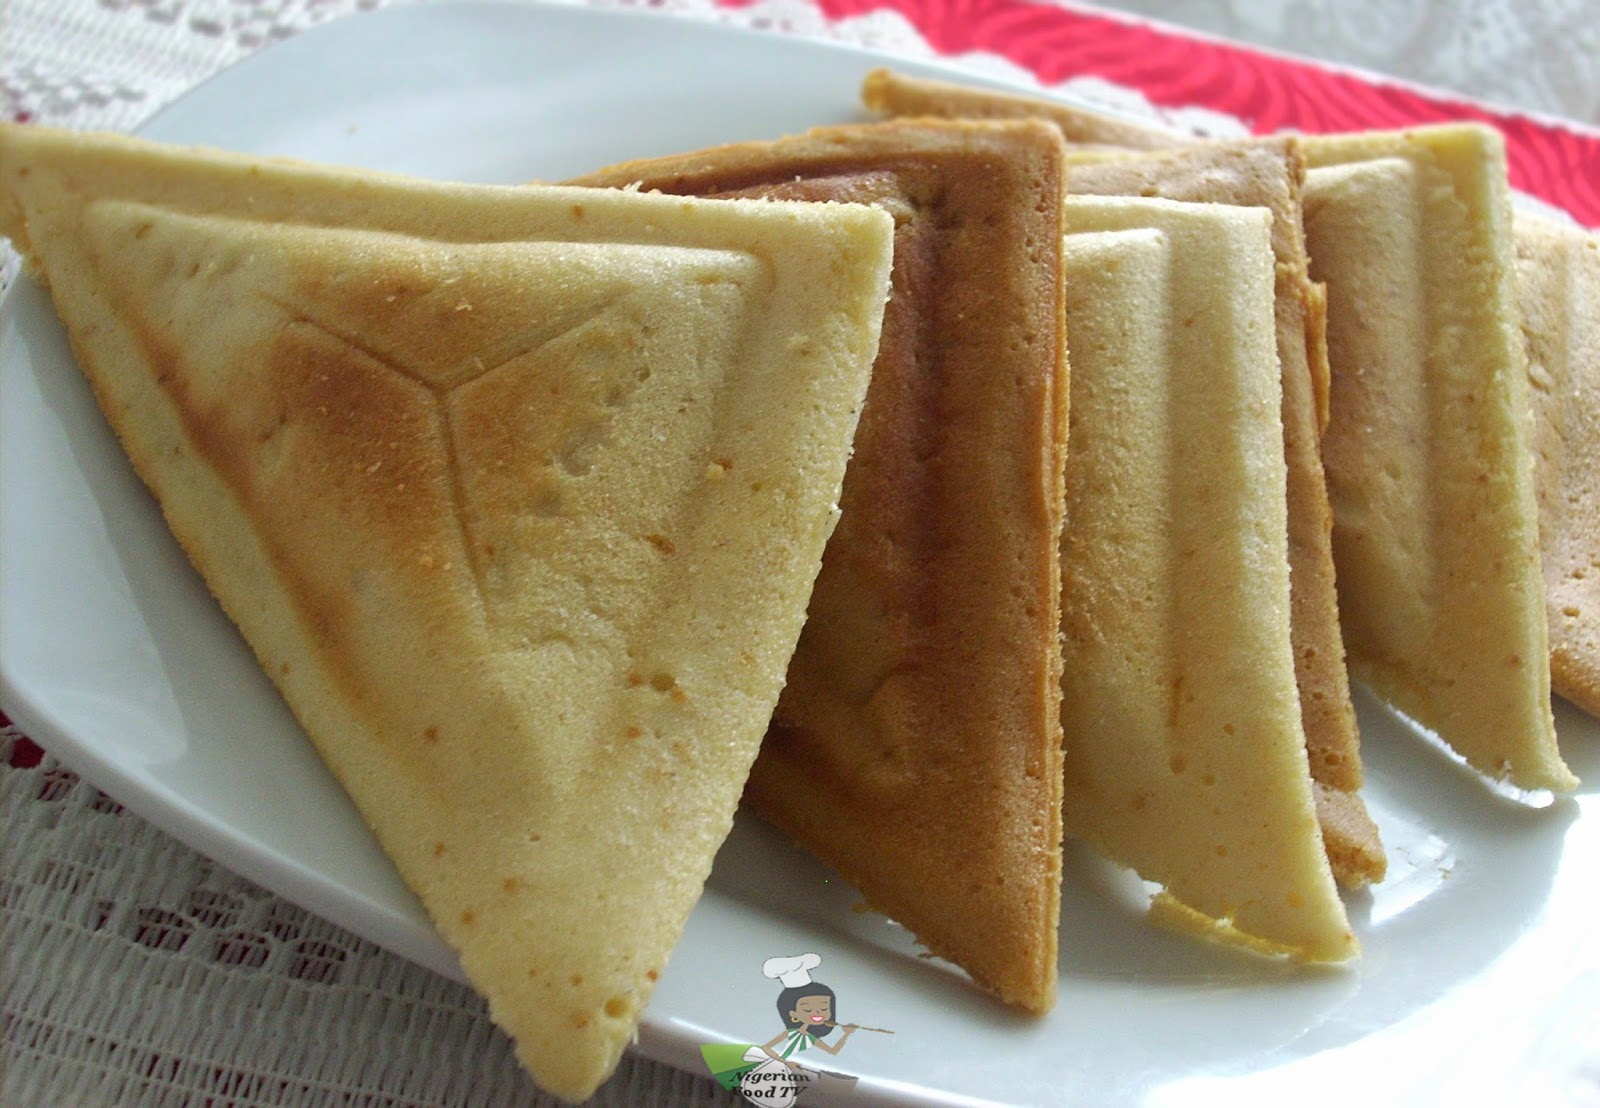 how to make Cake in a Toaster, nigerian cake, Sandwich maker pillow cake, sandwich maker recipes, sandwich toaster recipes